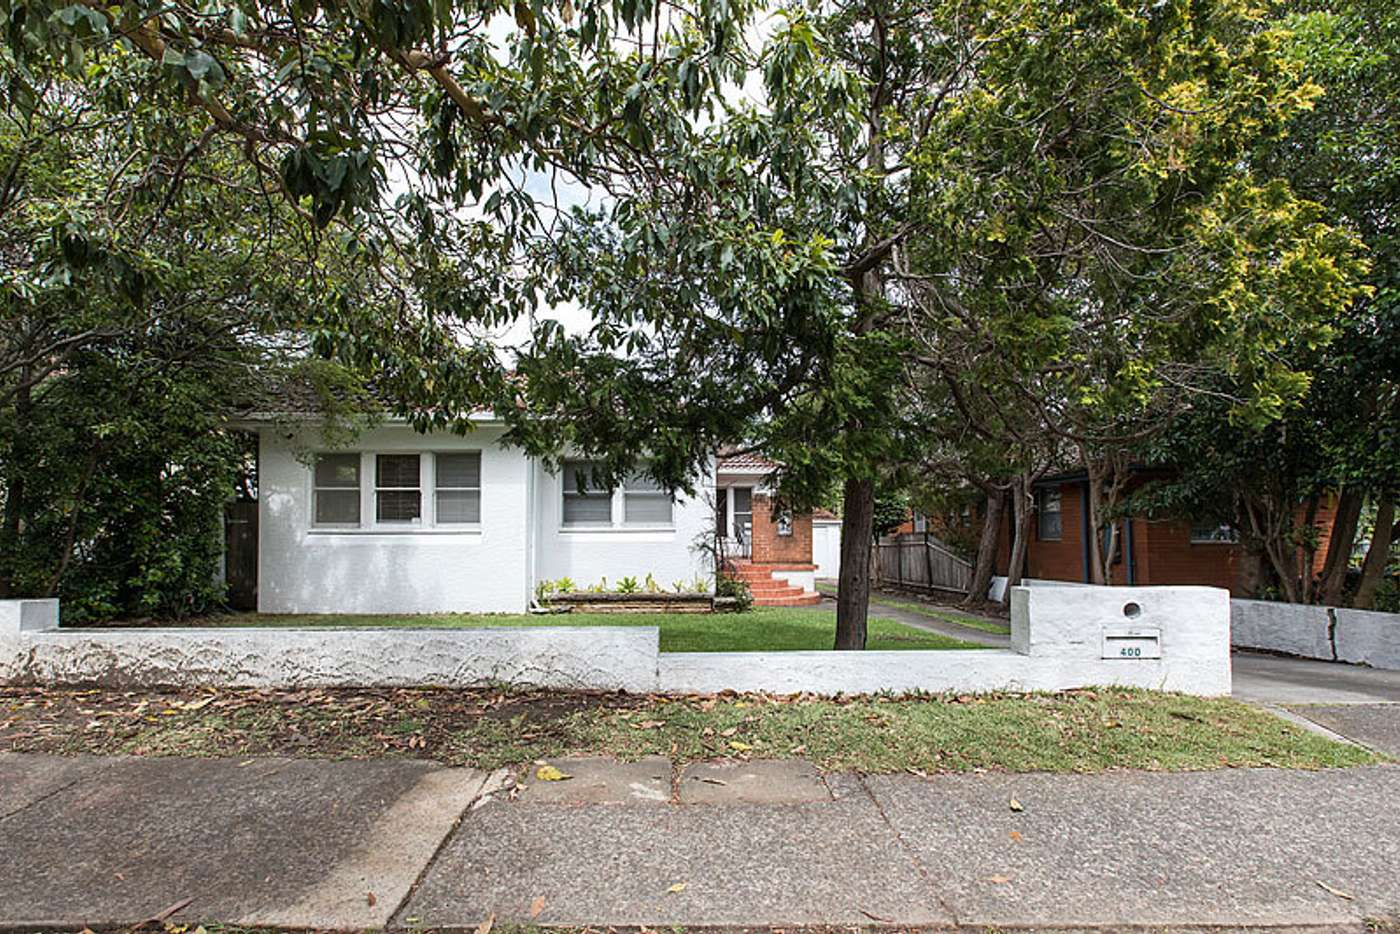 Main view of Homely house listing, 400 Kingsway, Caringbah NSW 2229